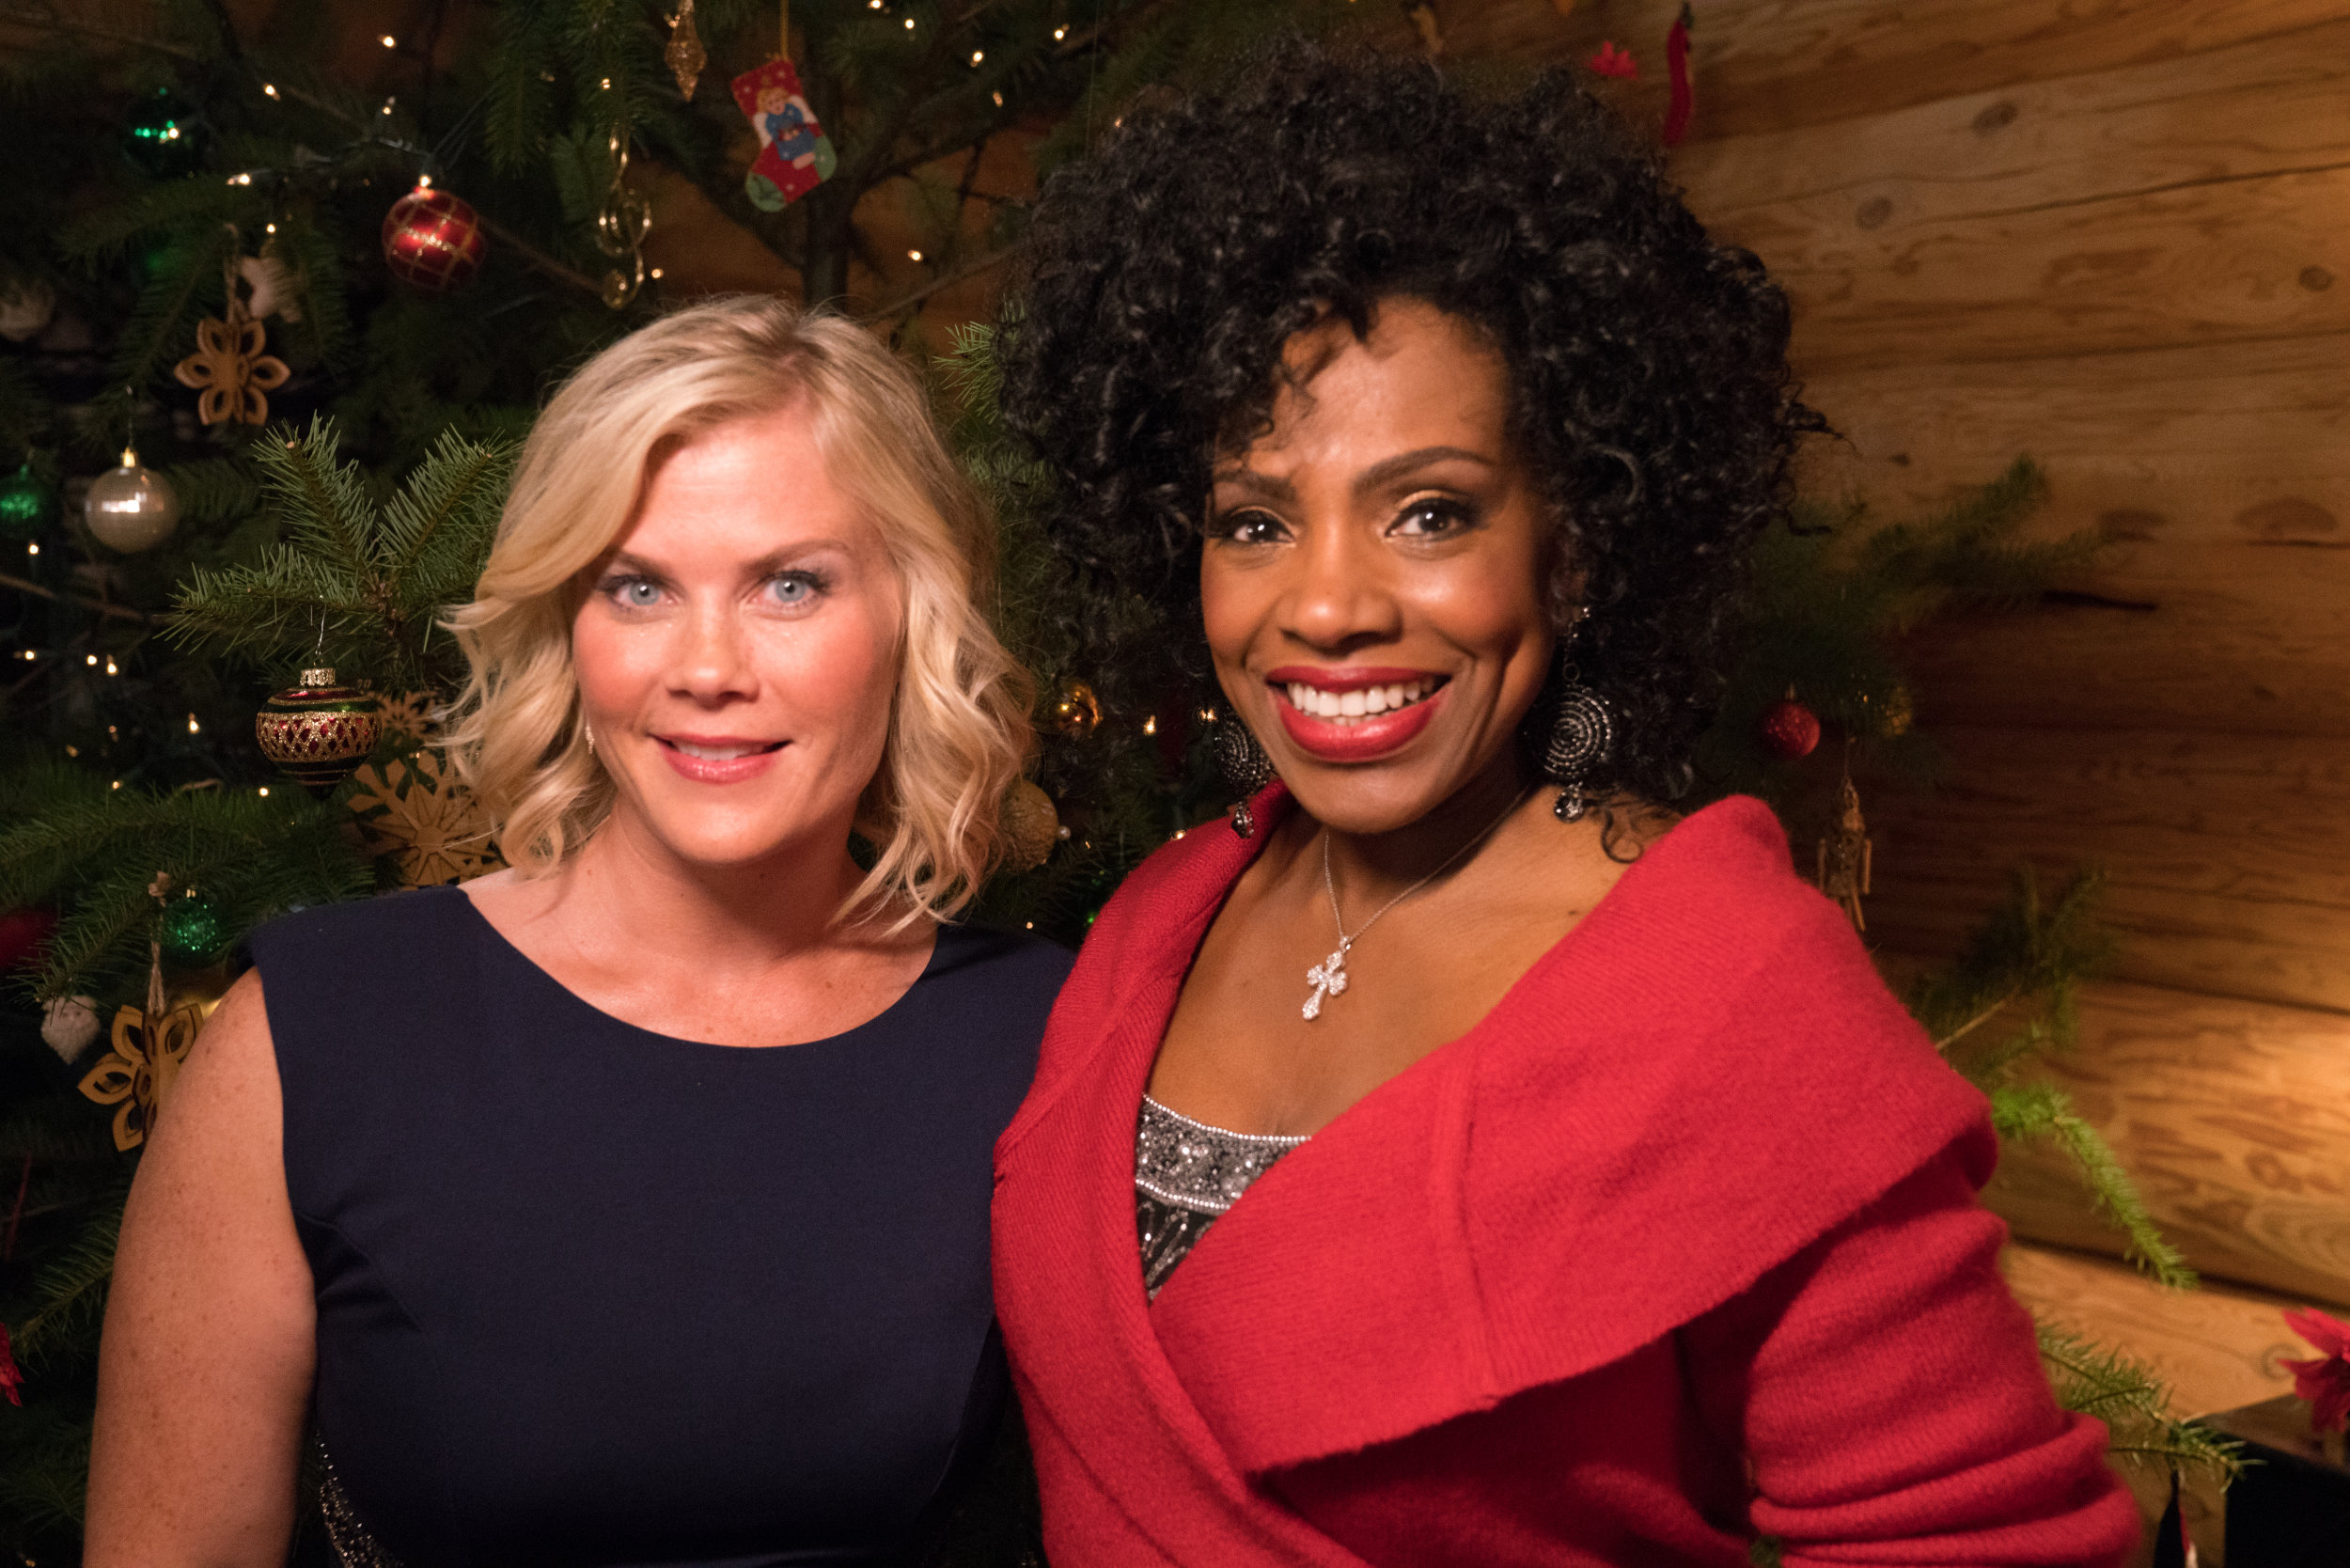 Christmas At Holly Lodge Cast.Cast Interviews Working With Her Co Stars Christmas At